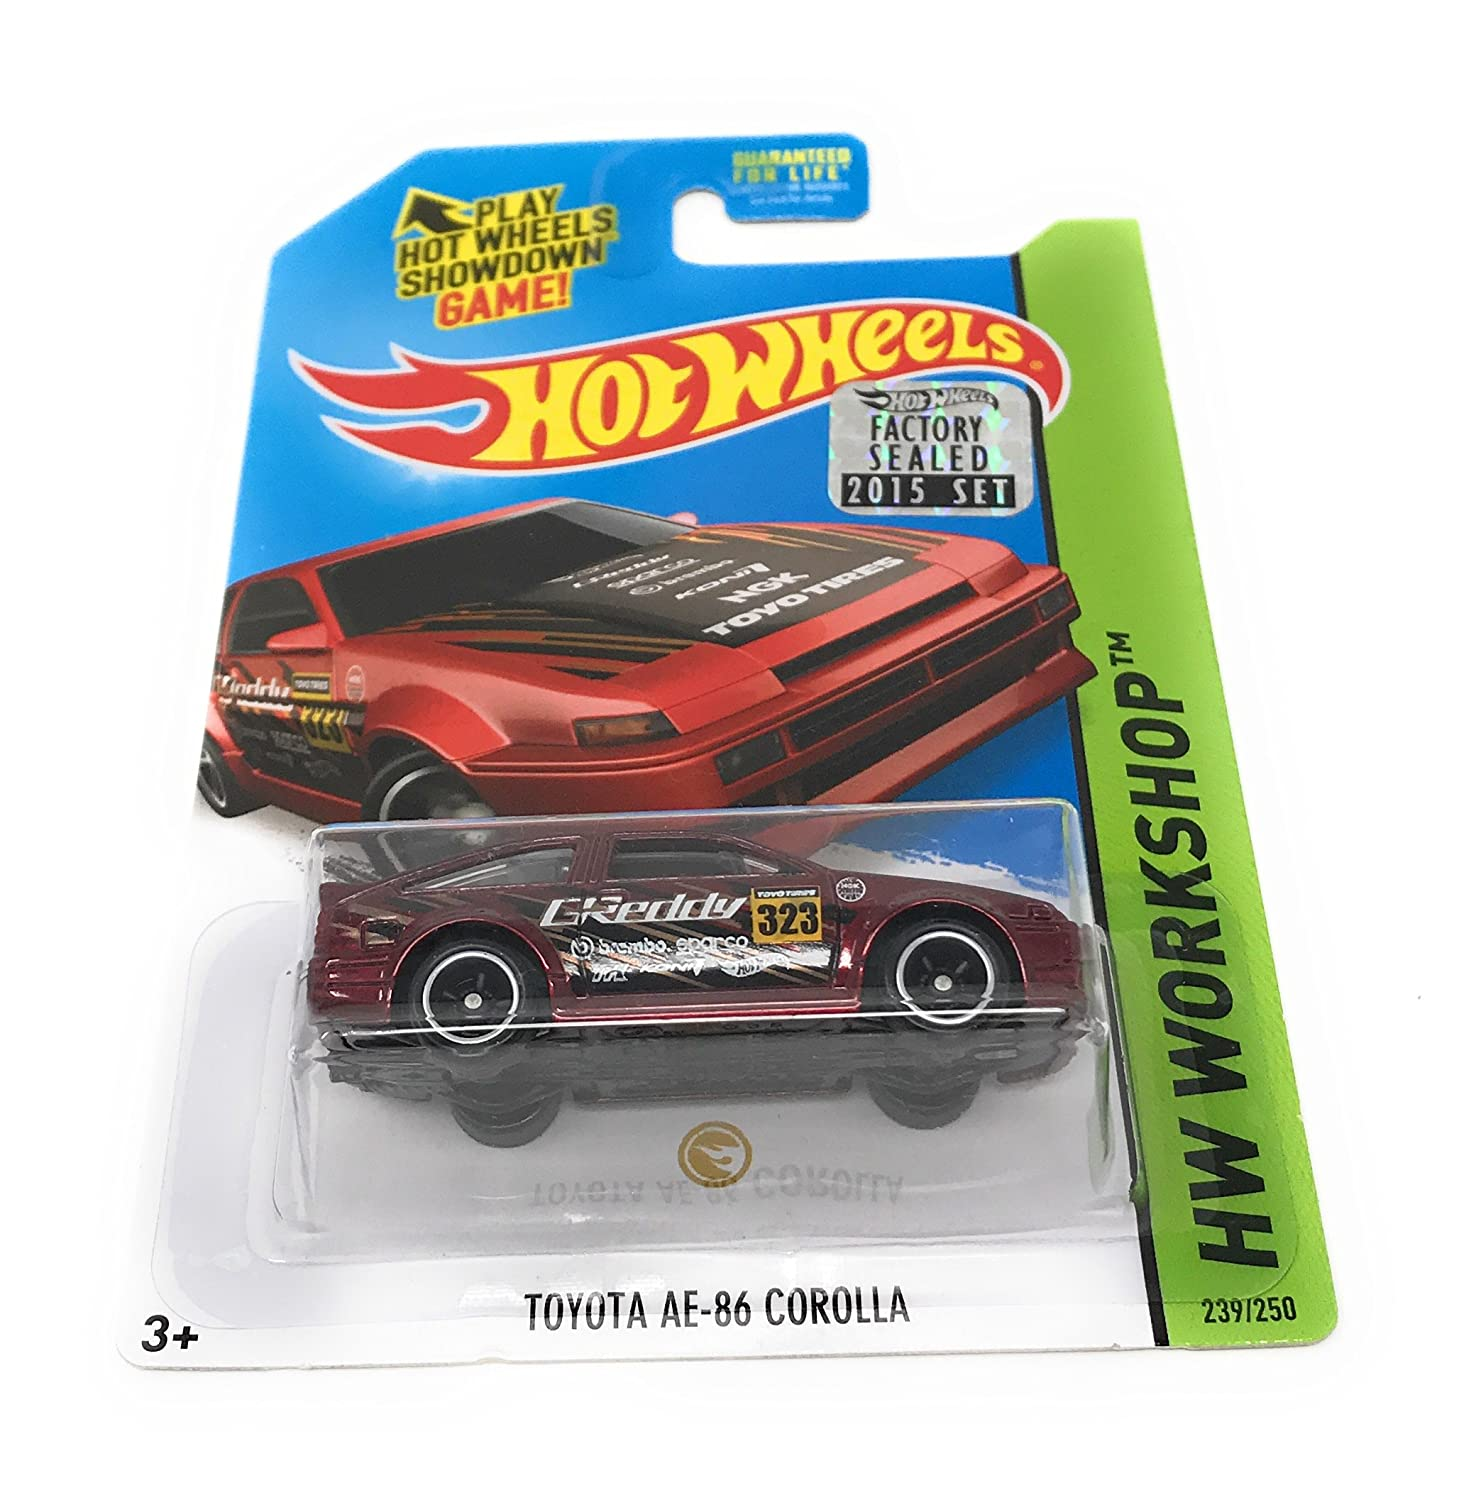 Hot Wheels 2015 Super Treasure Hunt Toyota Ae 86 Corolla Hotwheels Red Dark 239 250 Toys Games